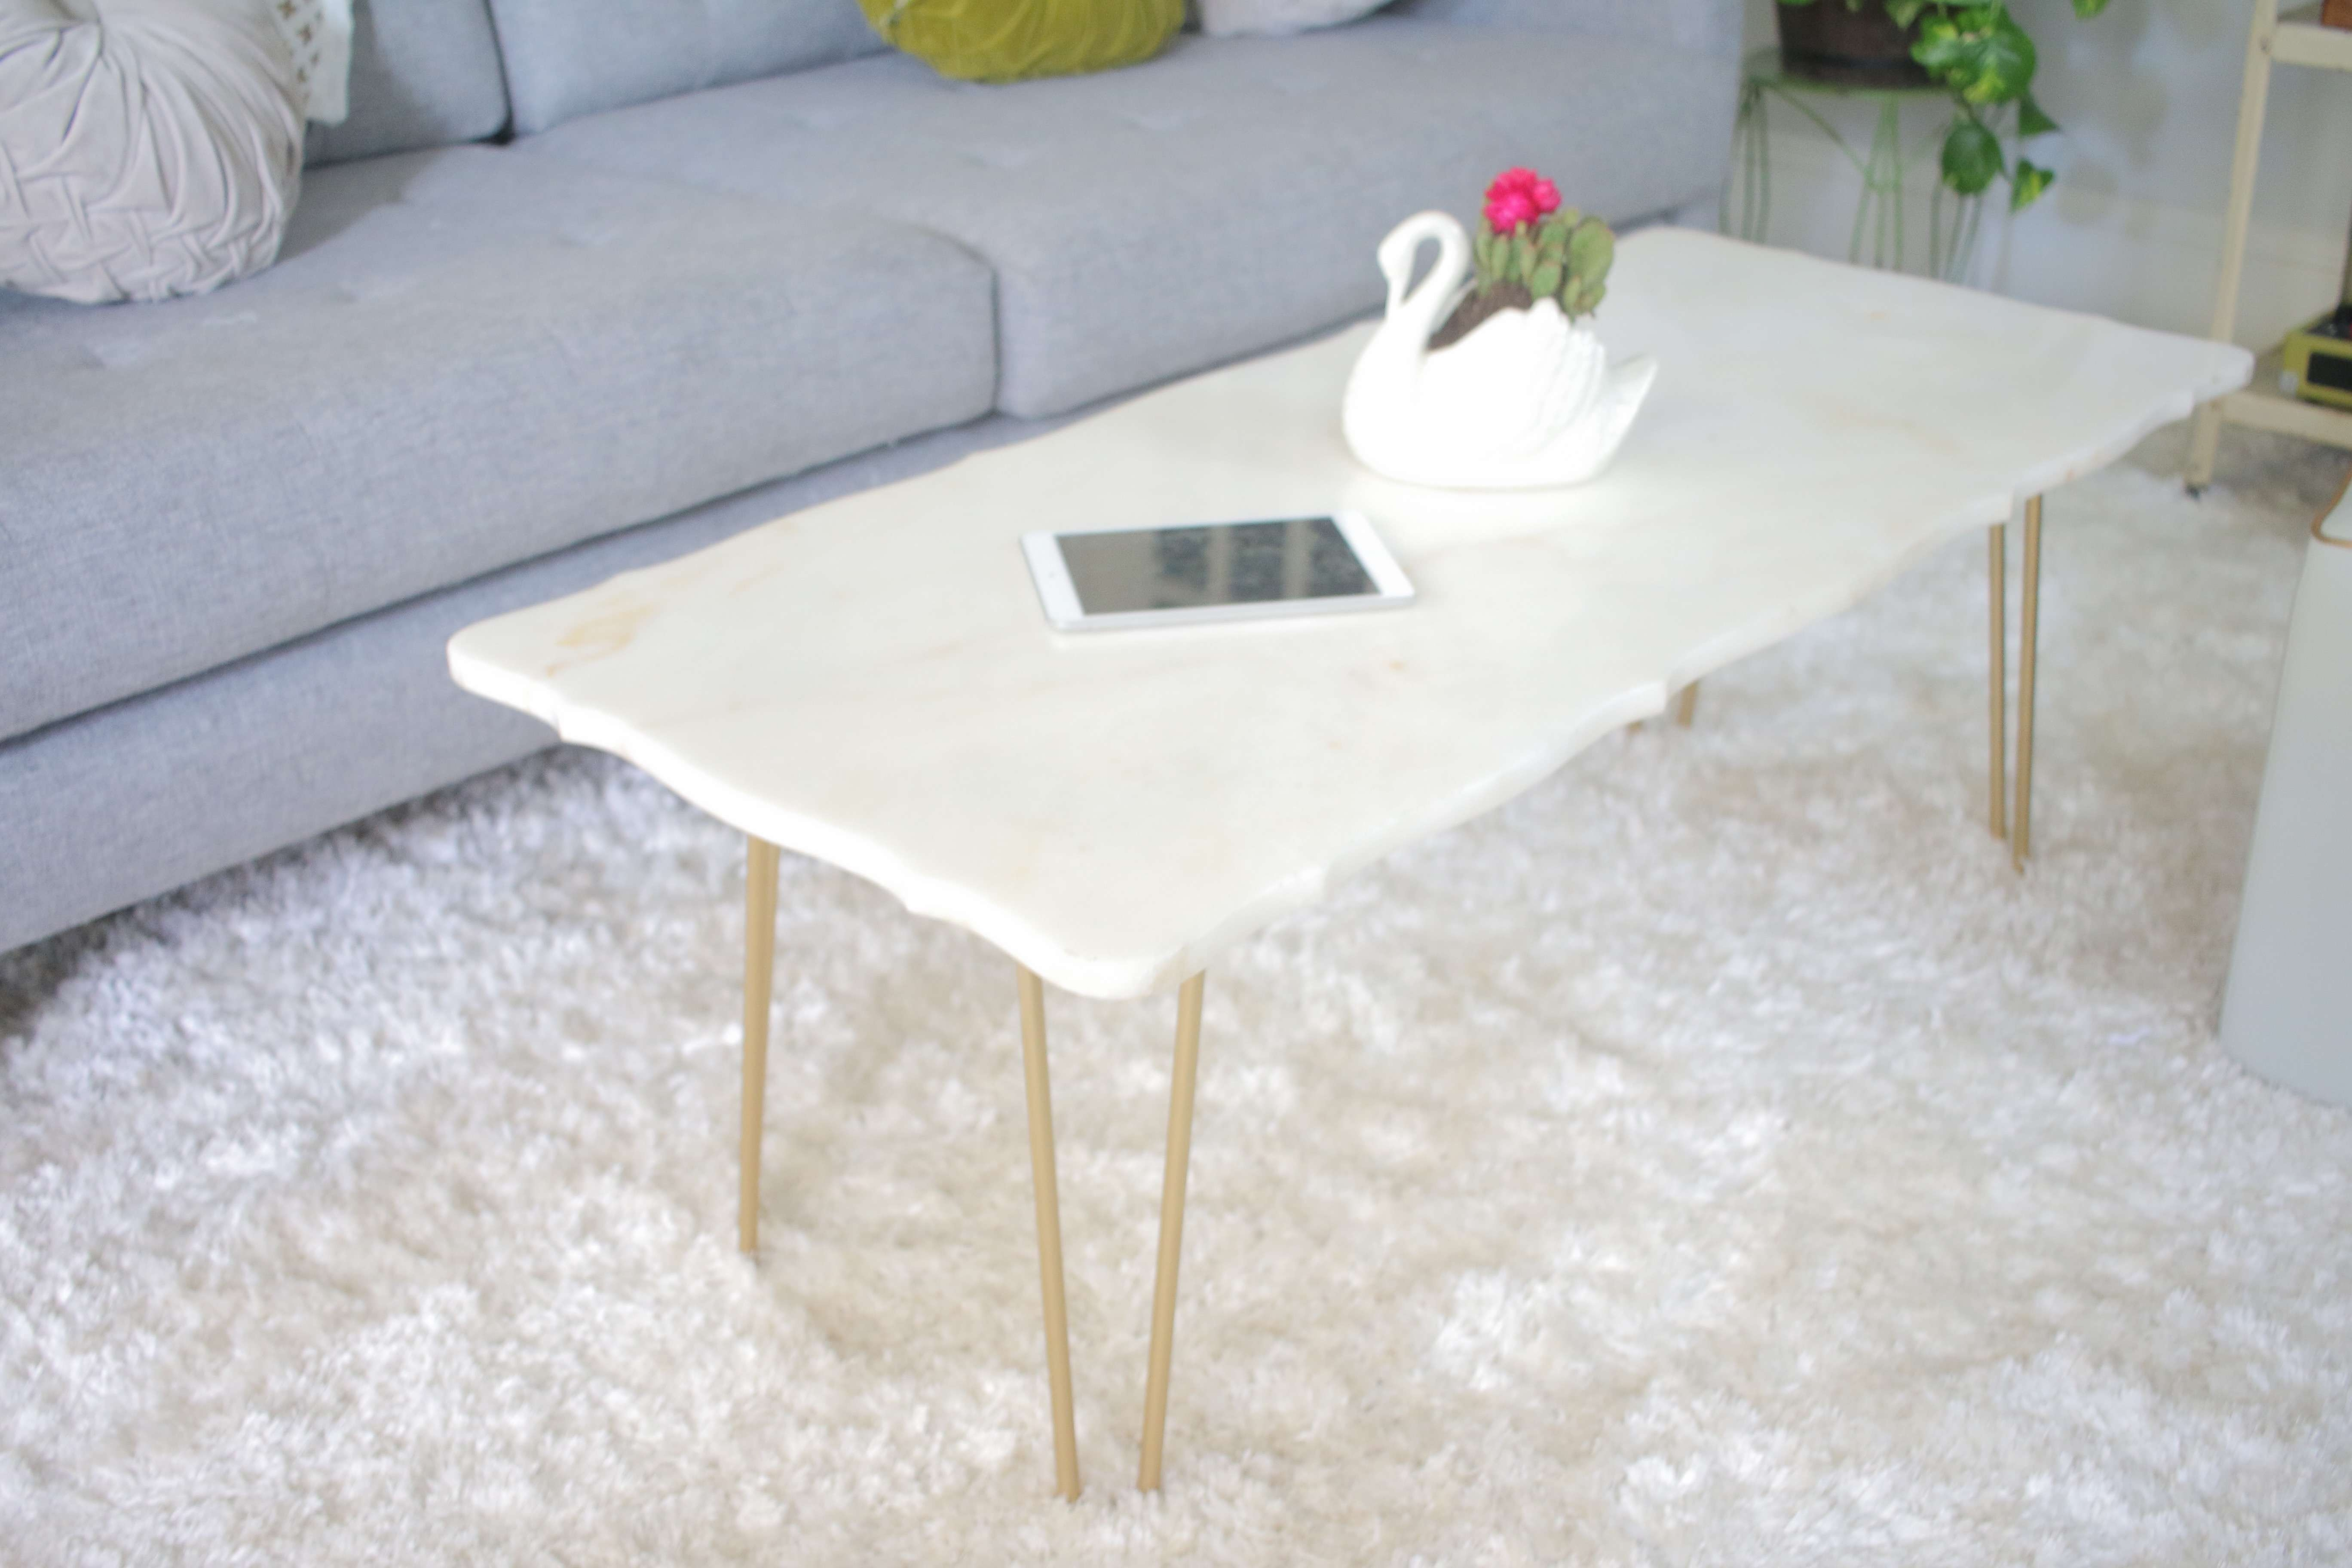 Diy: Marble Coffee Table With Regard To Most Recently Released Marble Coffee Tables (View 18 of 20)